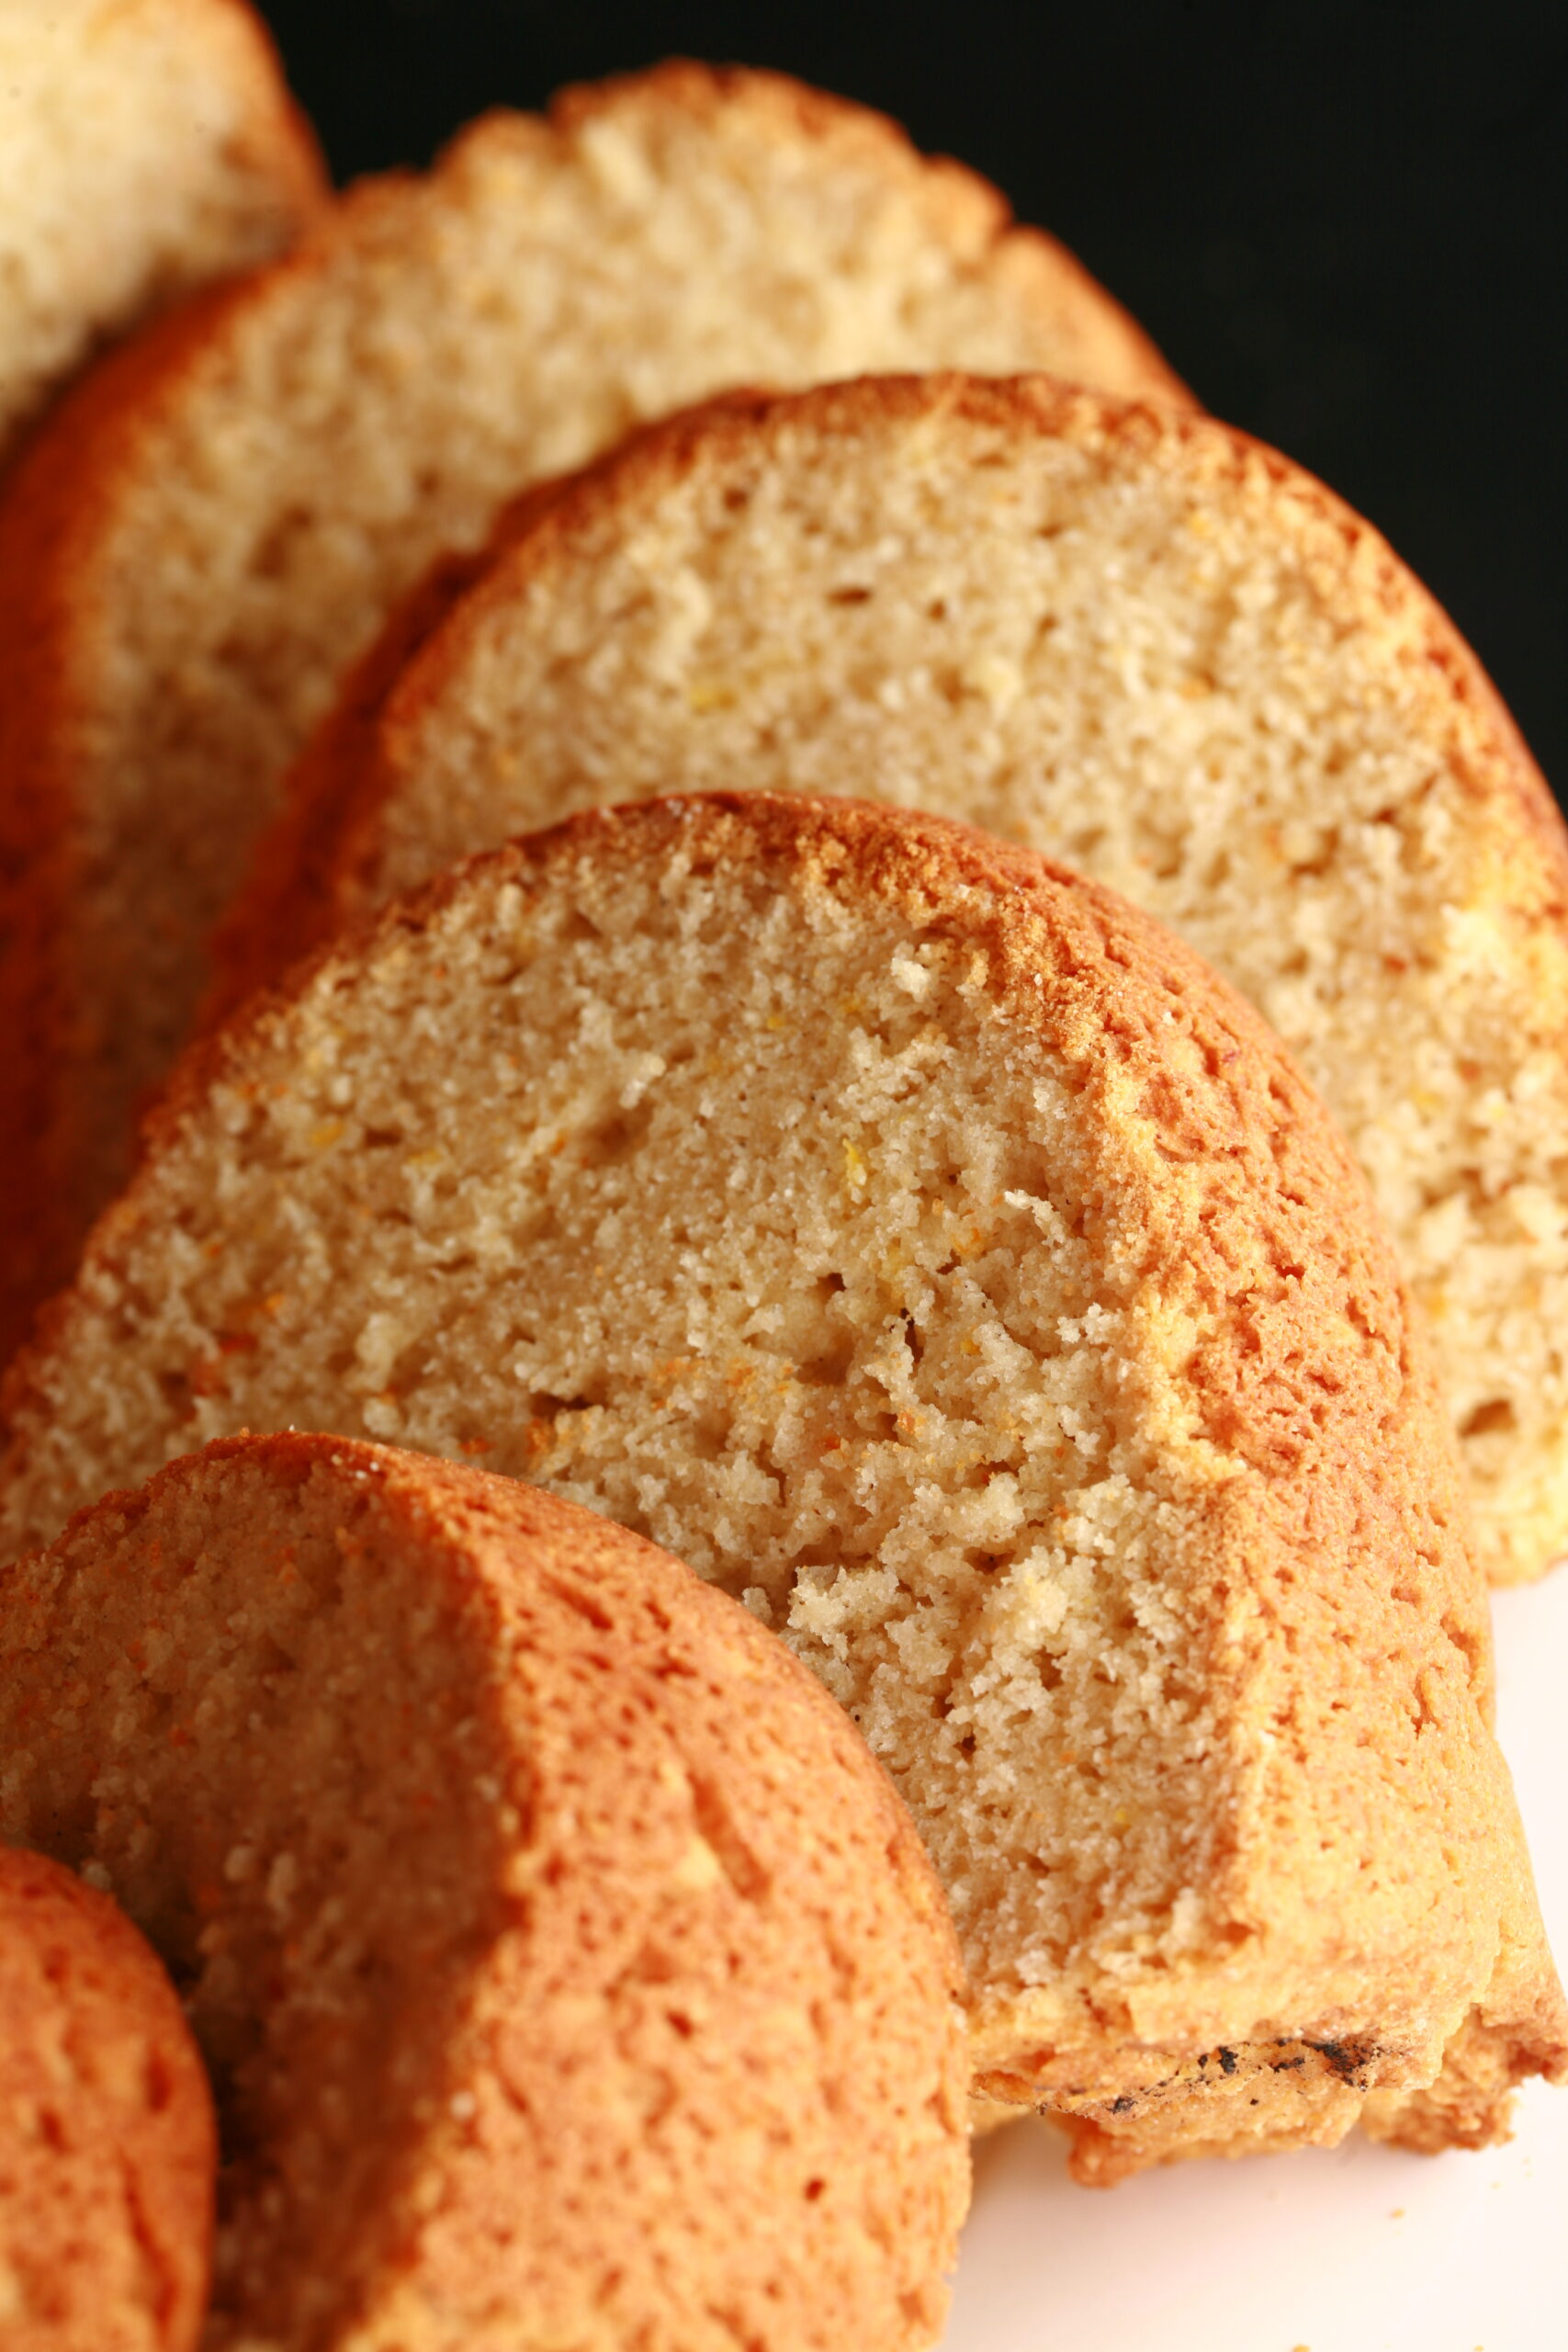 Sliced of a pale yellow bundt shaped loaf of bread.